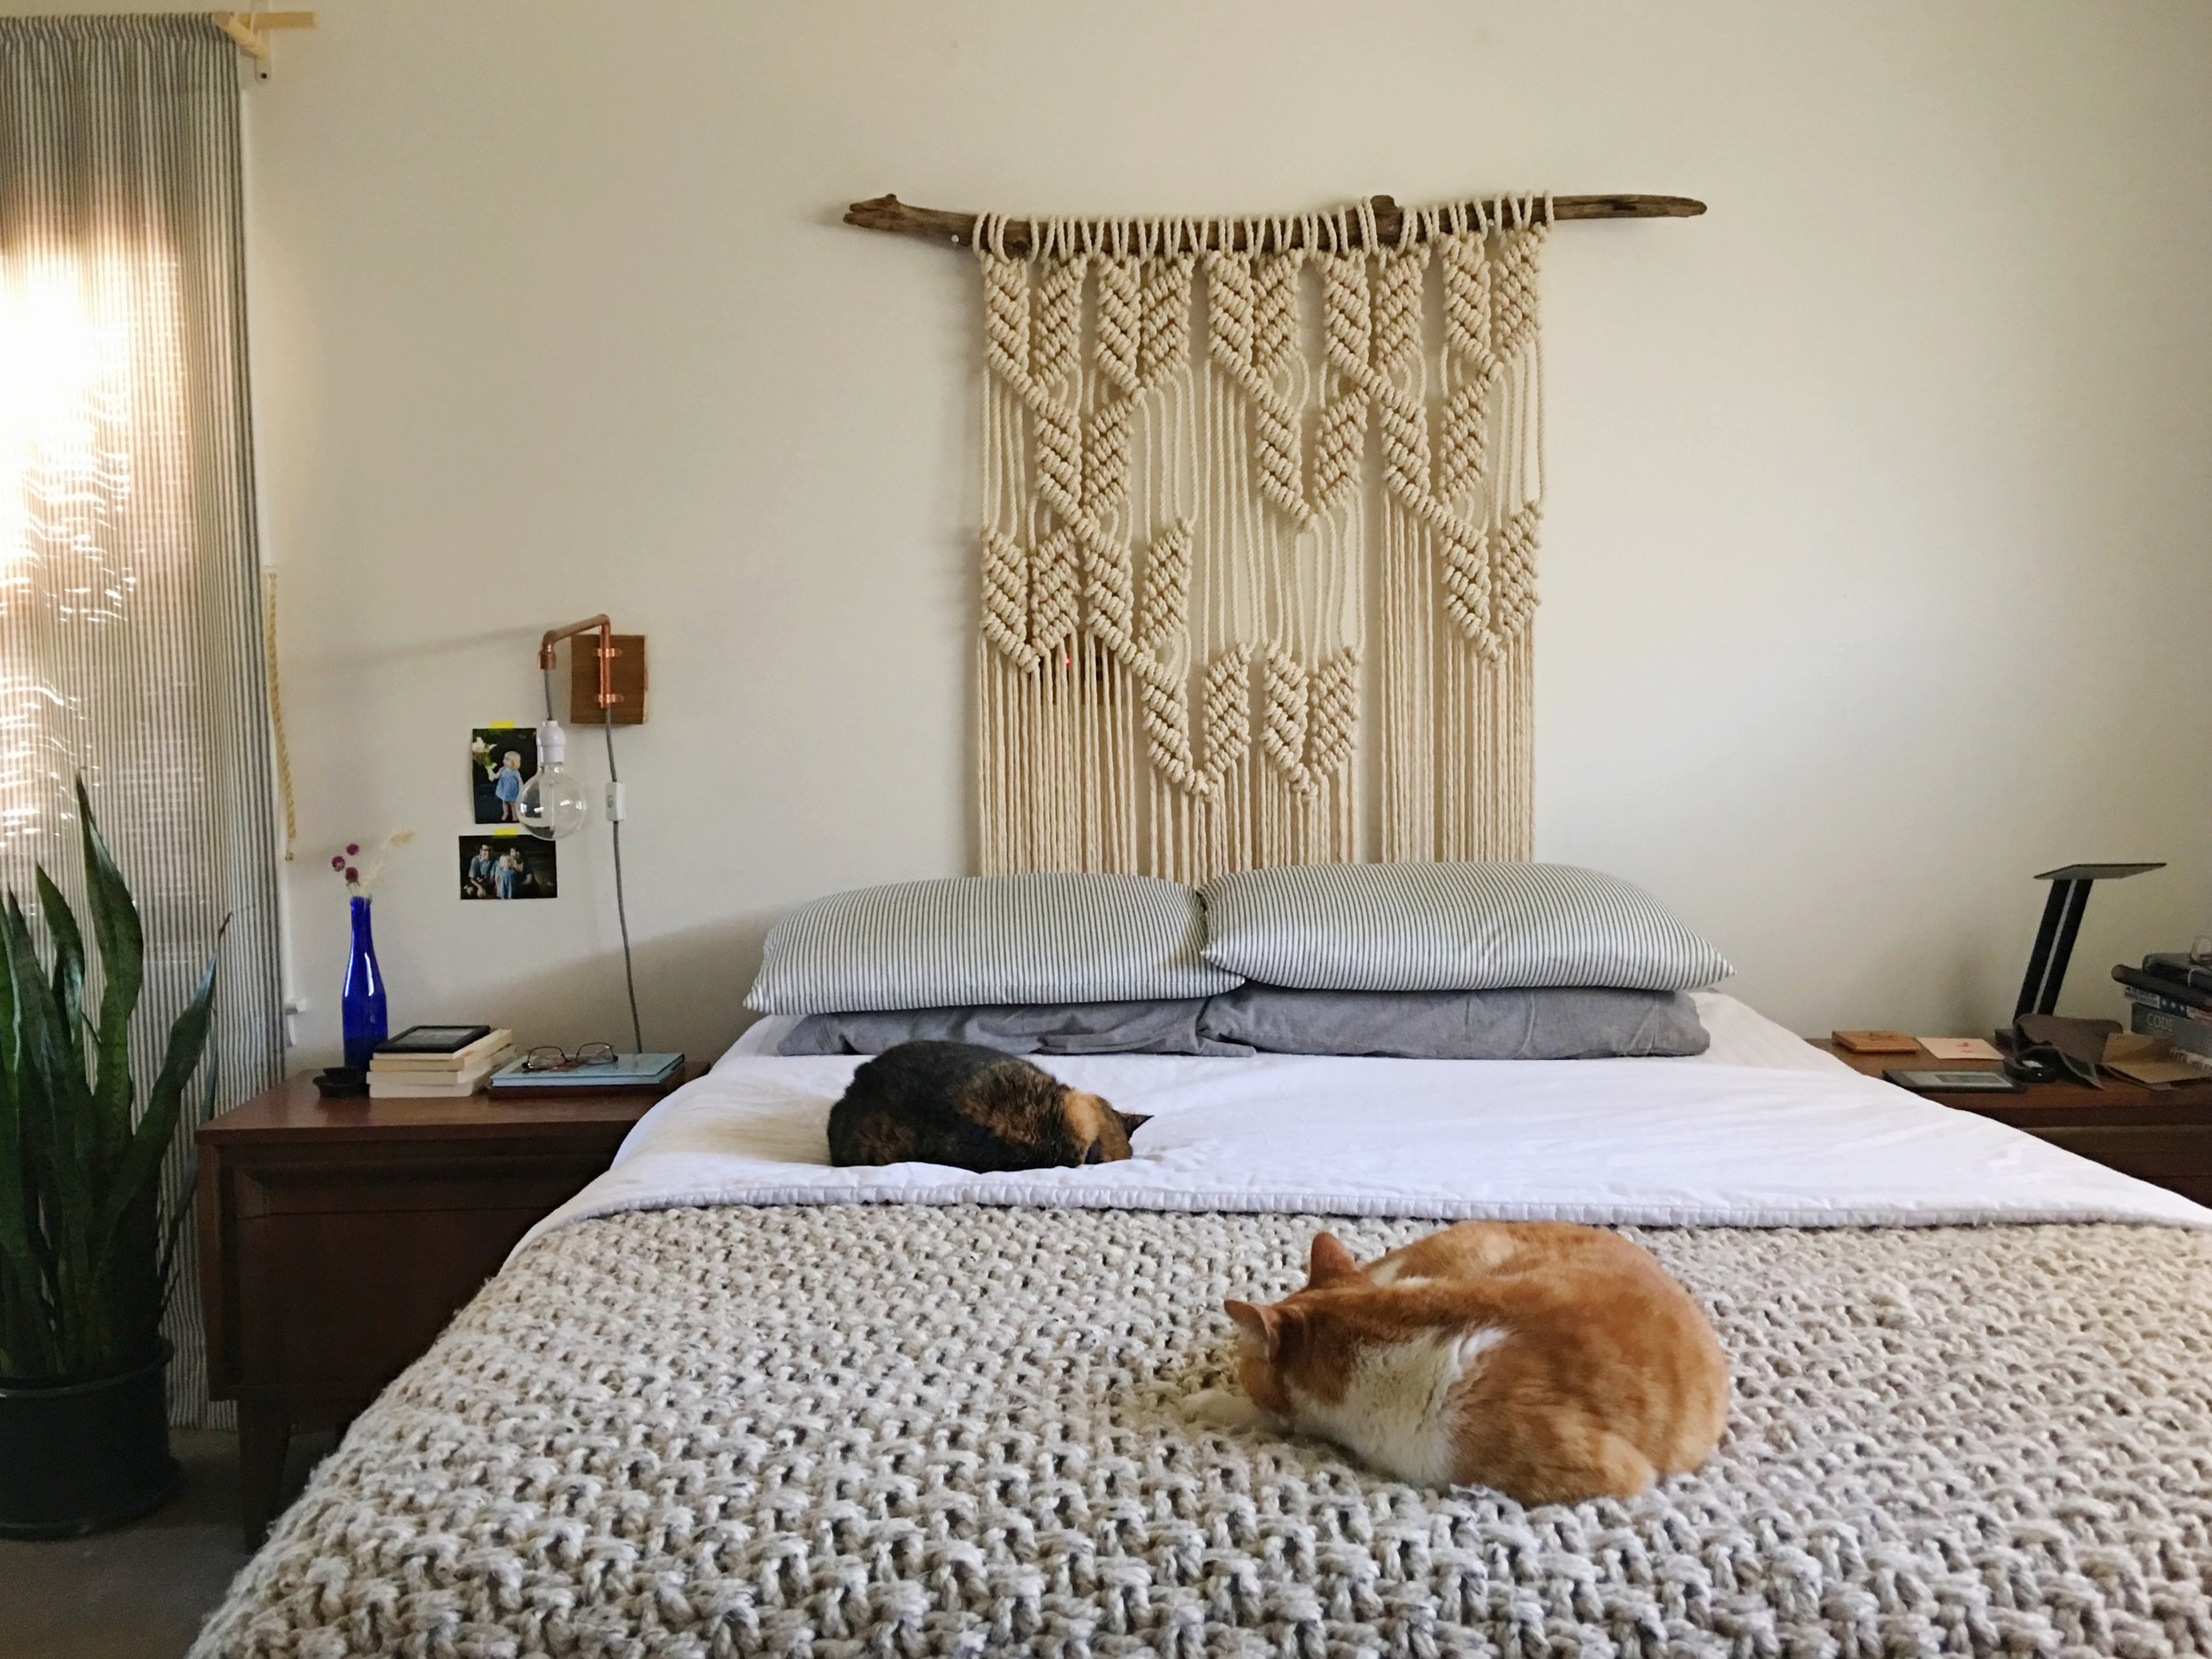 Everyone snuggled up with the winter blankets under the  House Sparrow   macrame headboard.